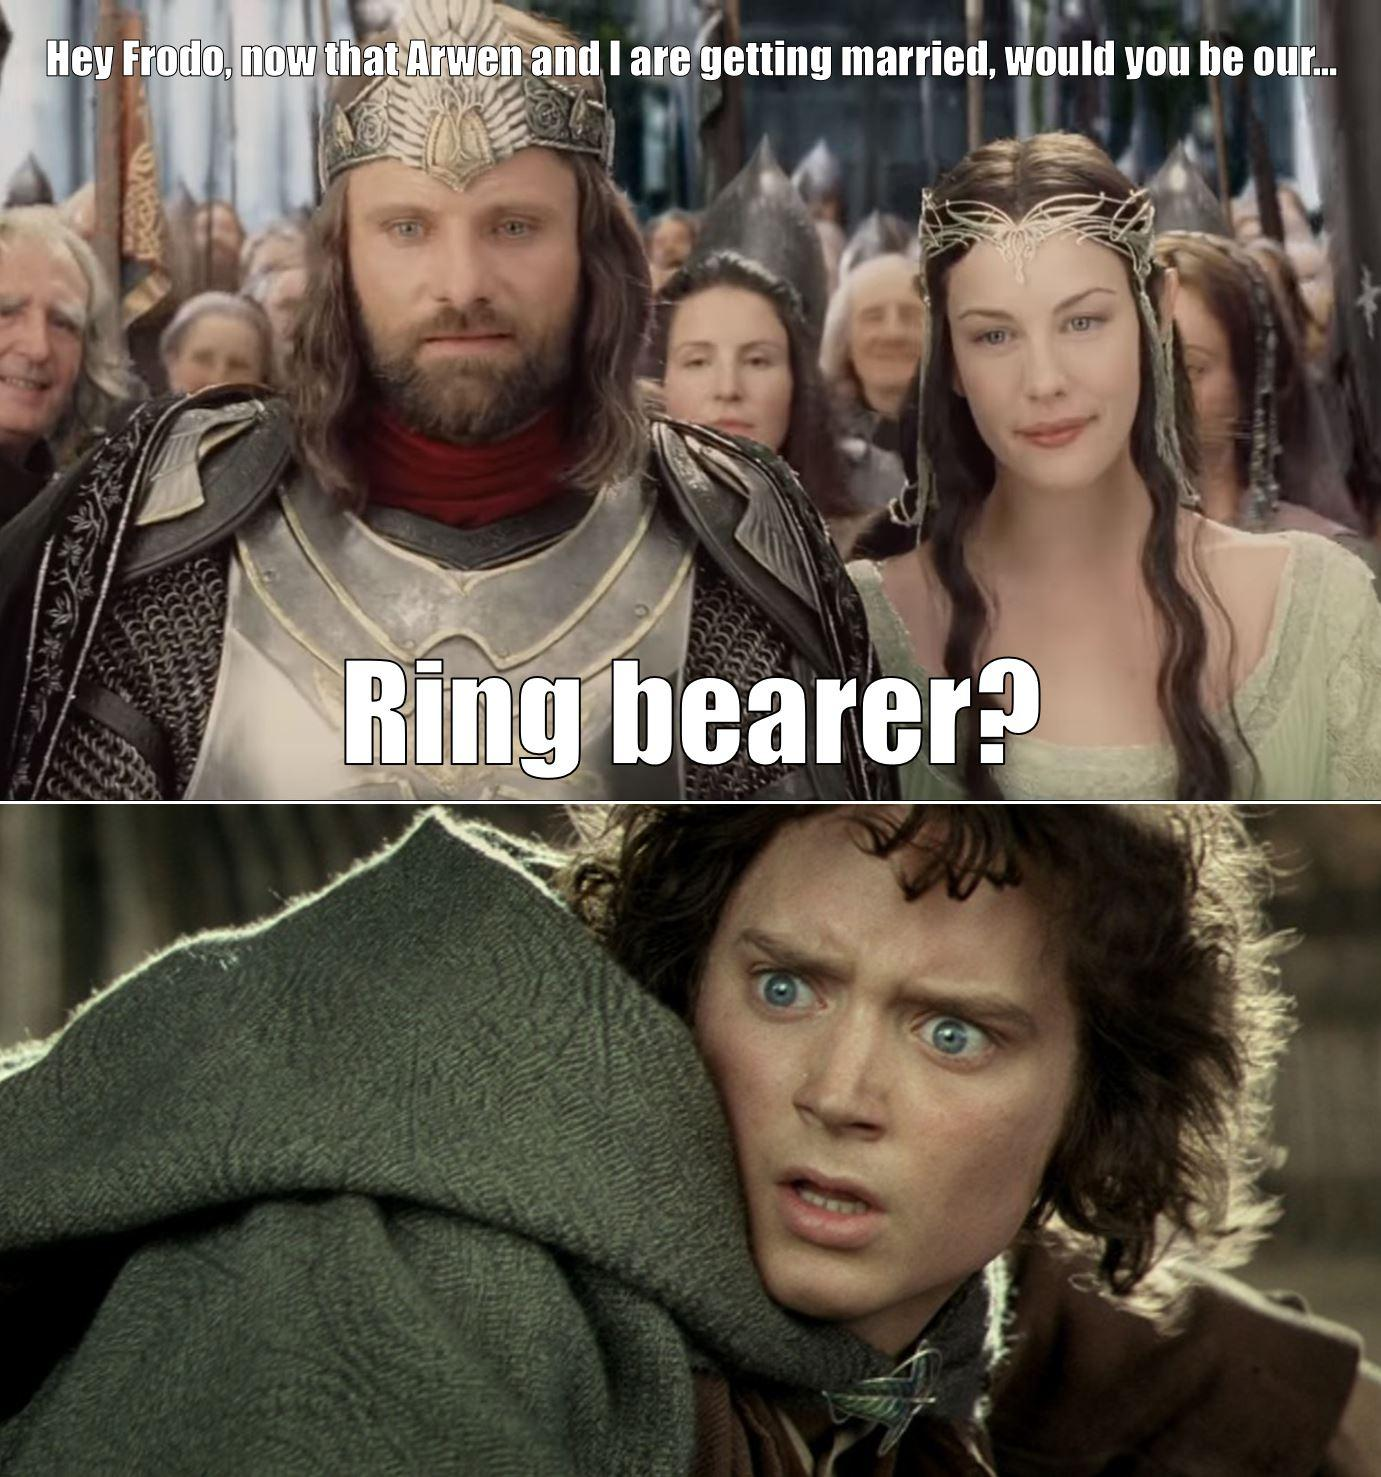 lord of the rings meme - Google Search | Lotr funny, Lotr, Lord of the rings